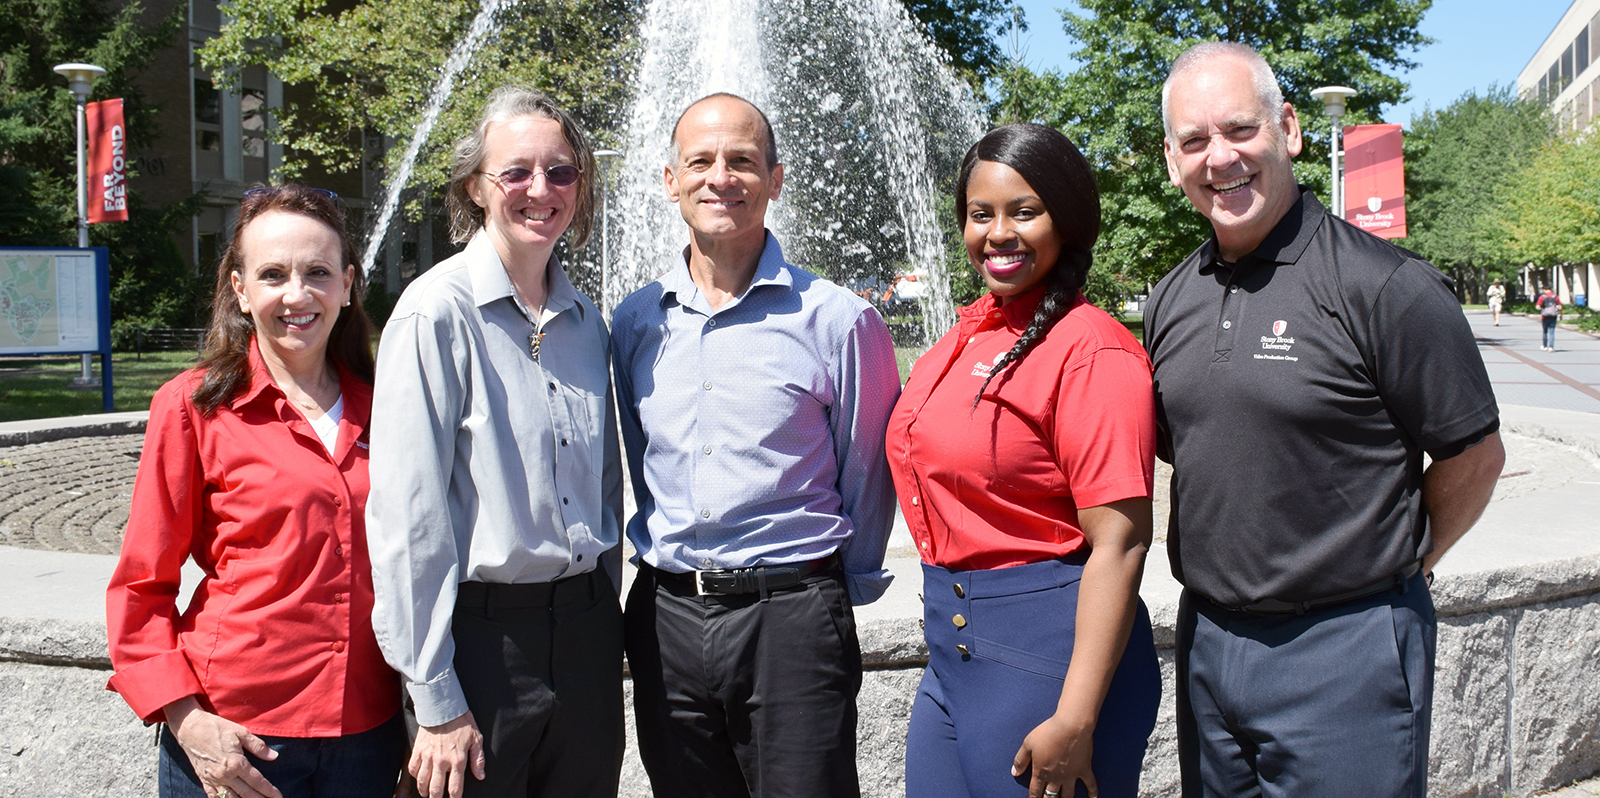 From left to right: Linda Unger, Jennifer Adams, Dr. Peter Small, Tayisha Saint Vil, William Cusick.